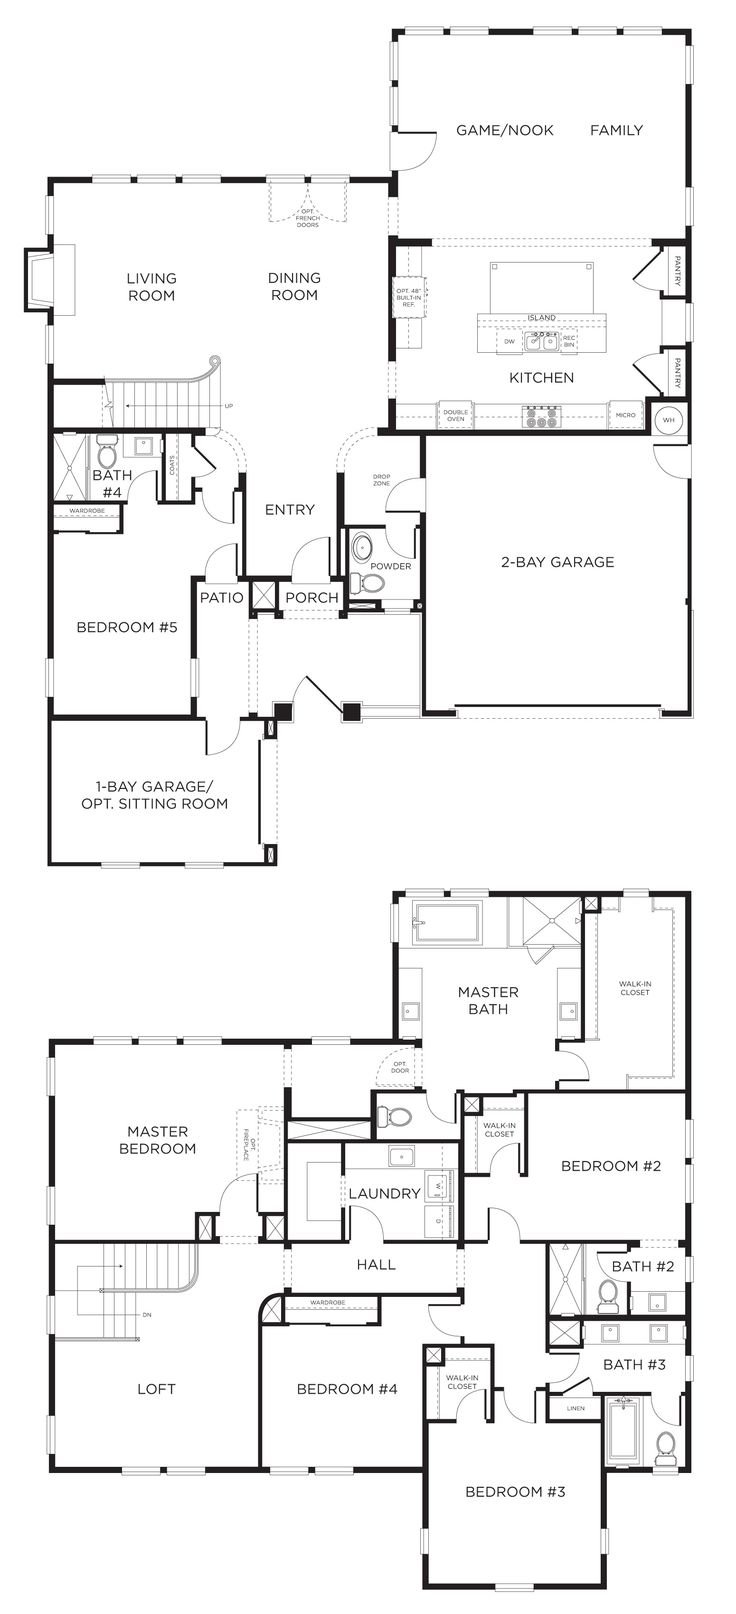 Best Images About Houses On Pinterest - Floor plans for 5 bedroom homes